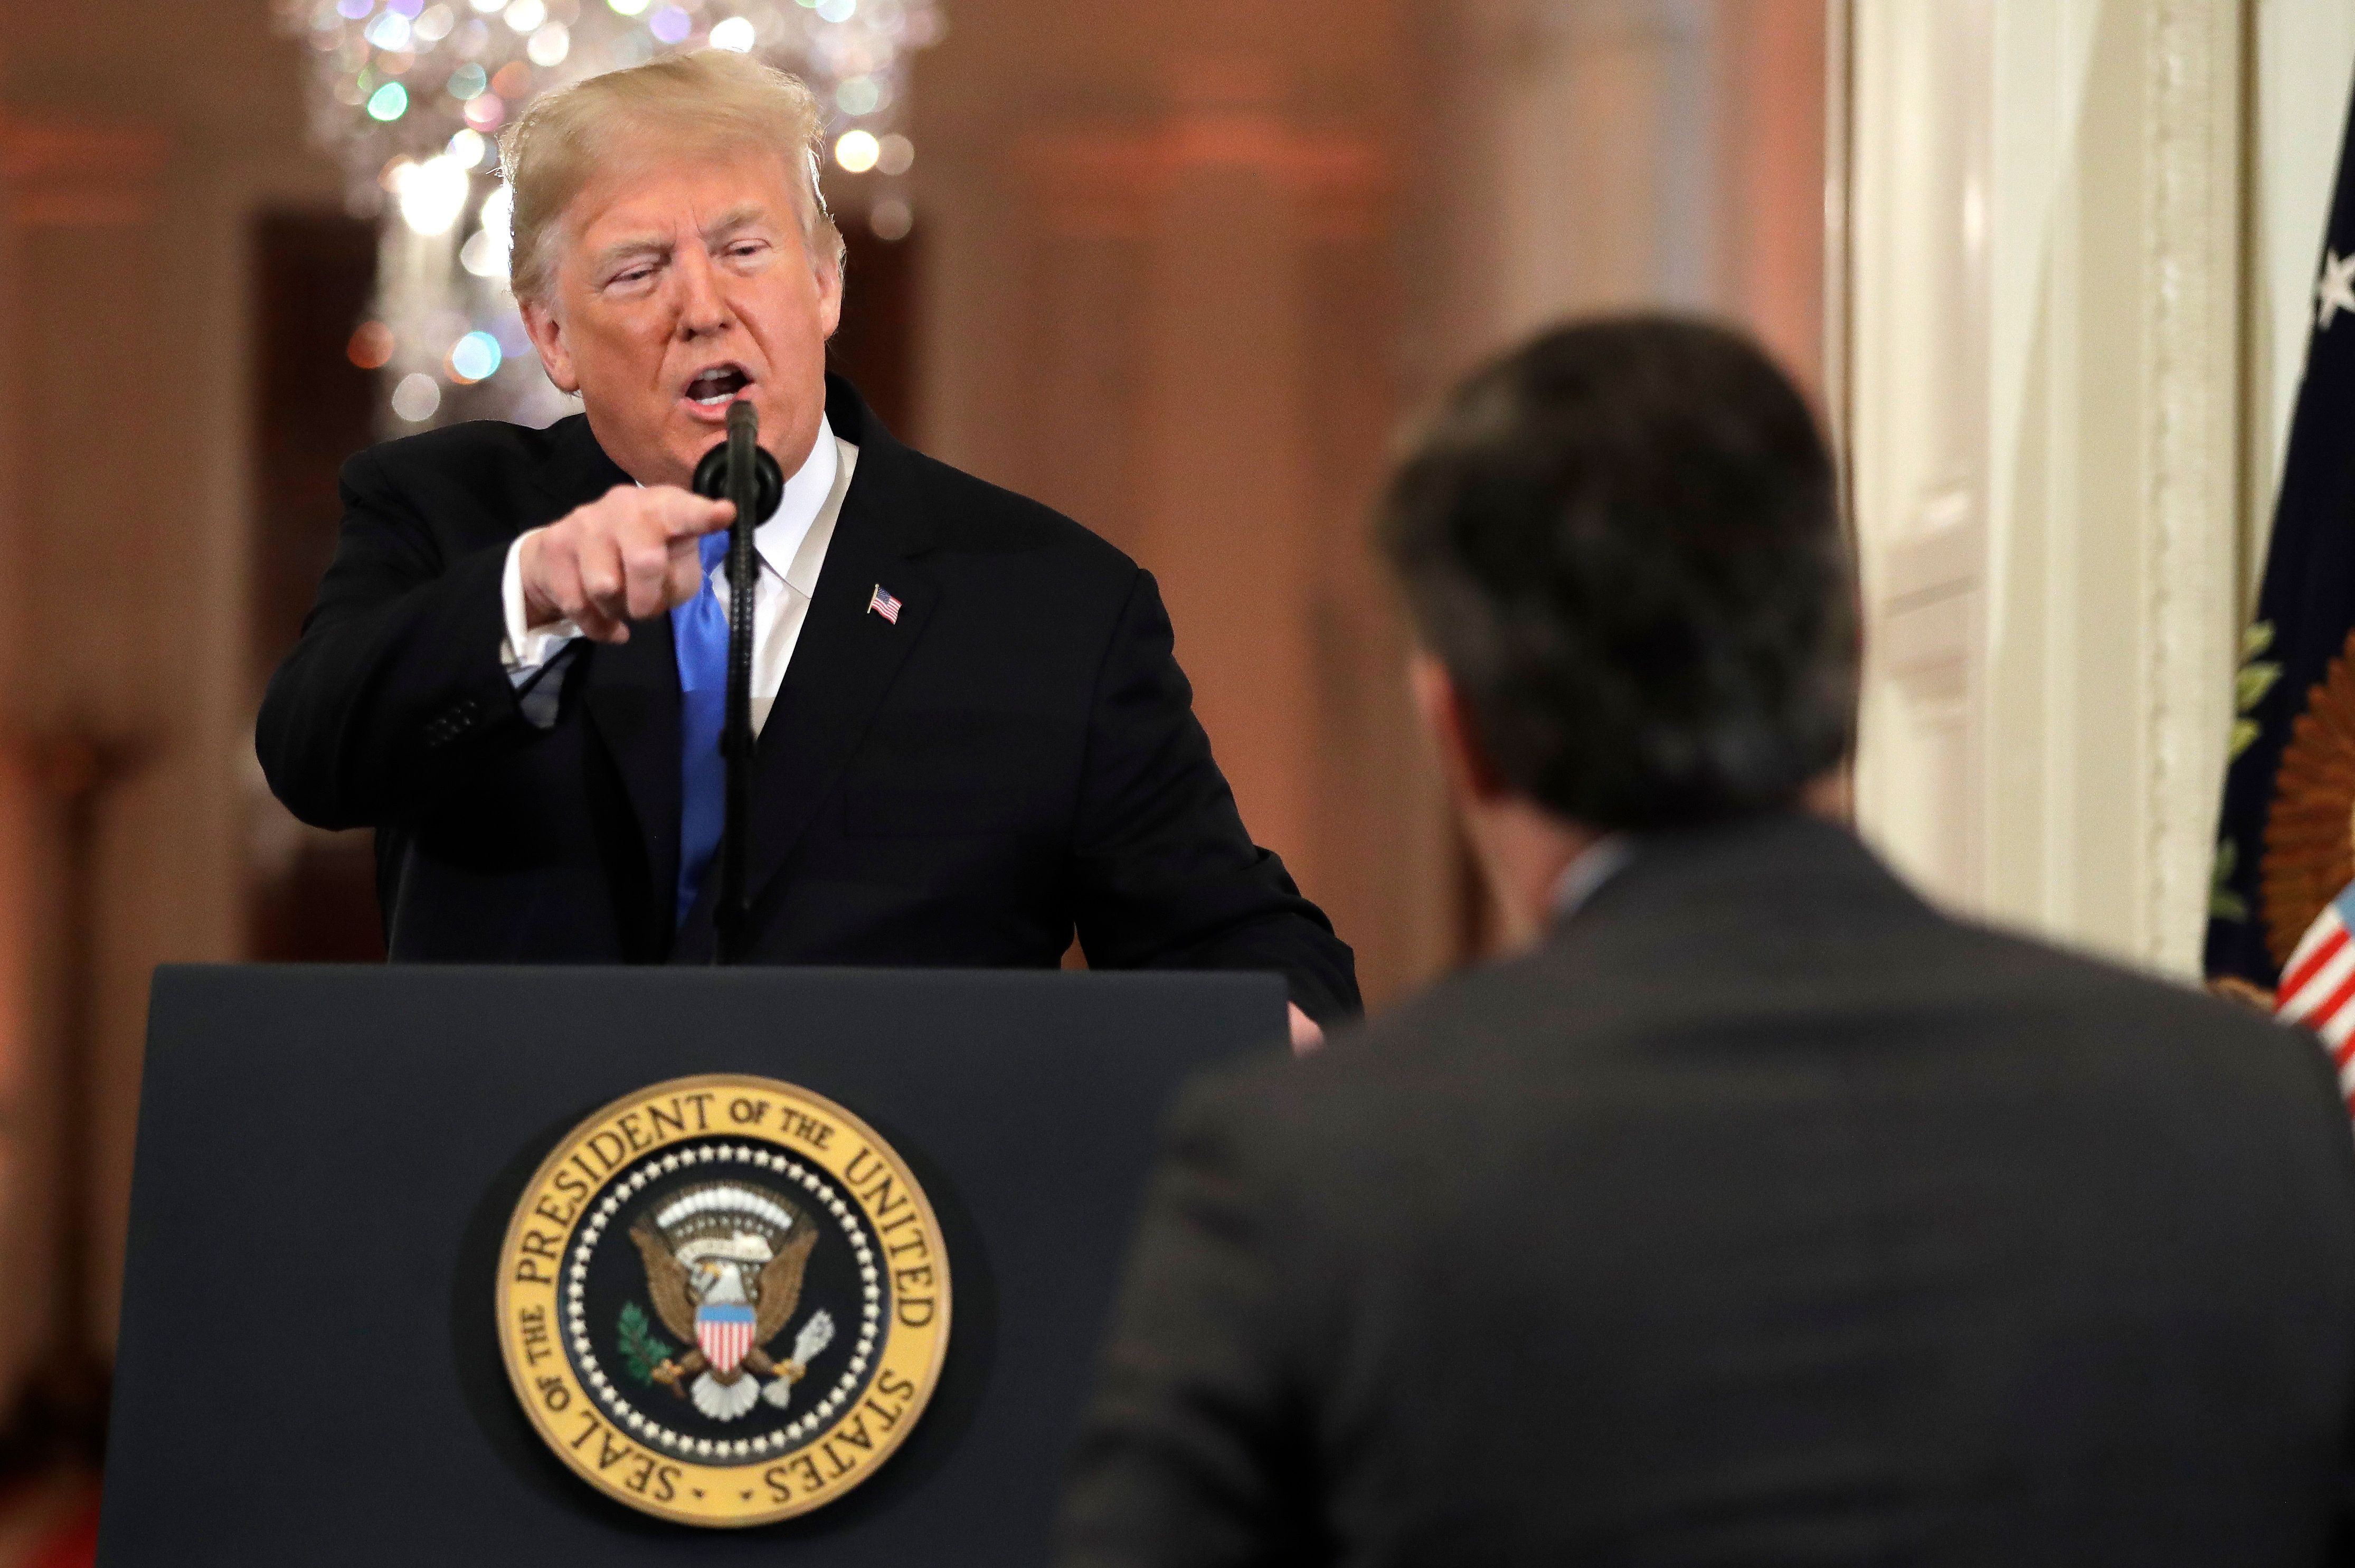 Jim Acosta: White House defends revoking CNN man's access